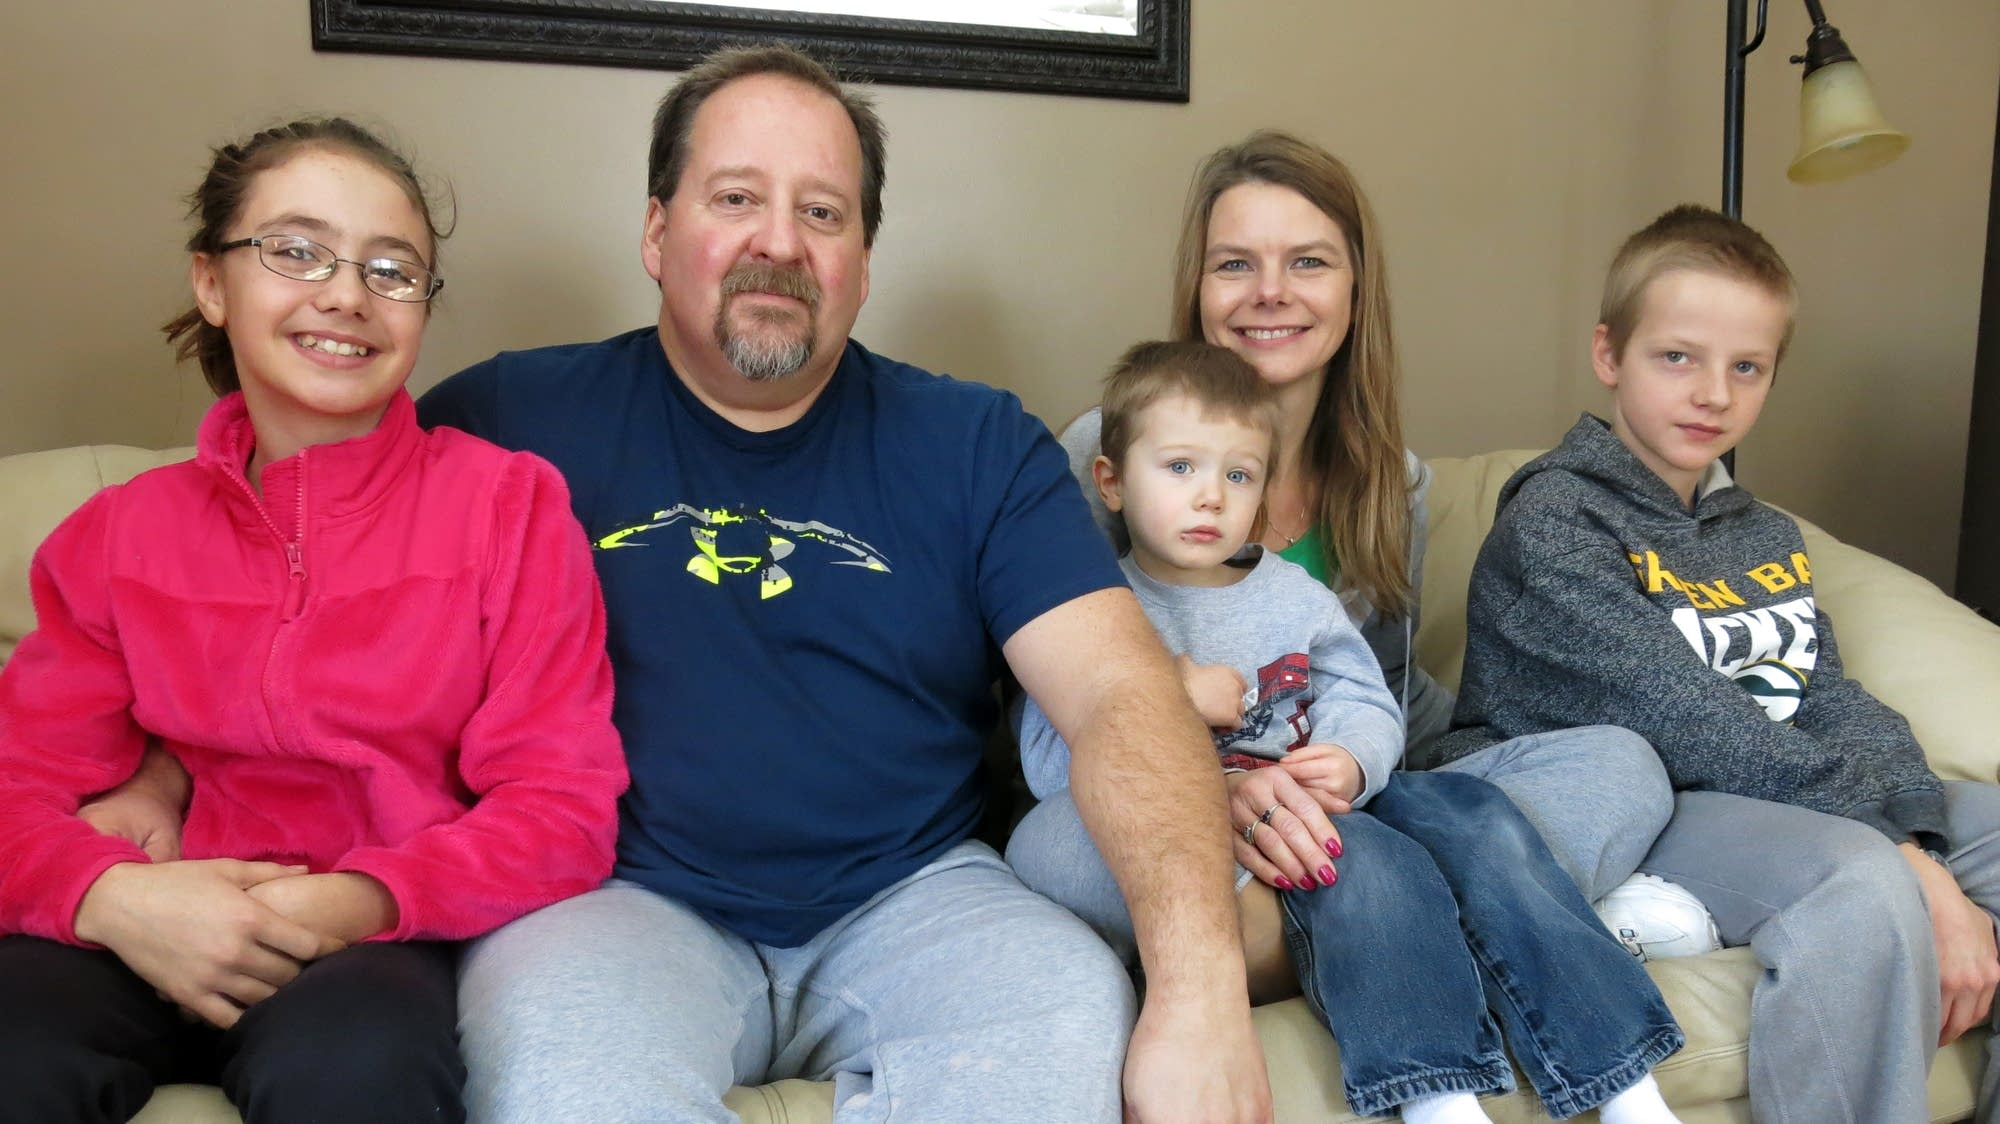 John and Cindy Ness sit with three of their children, Tiena, Zack and Noah.